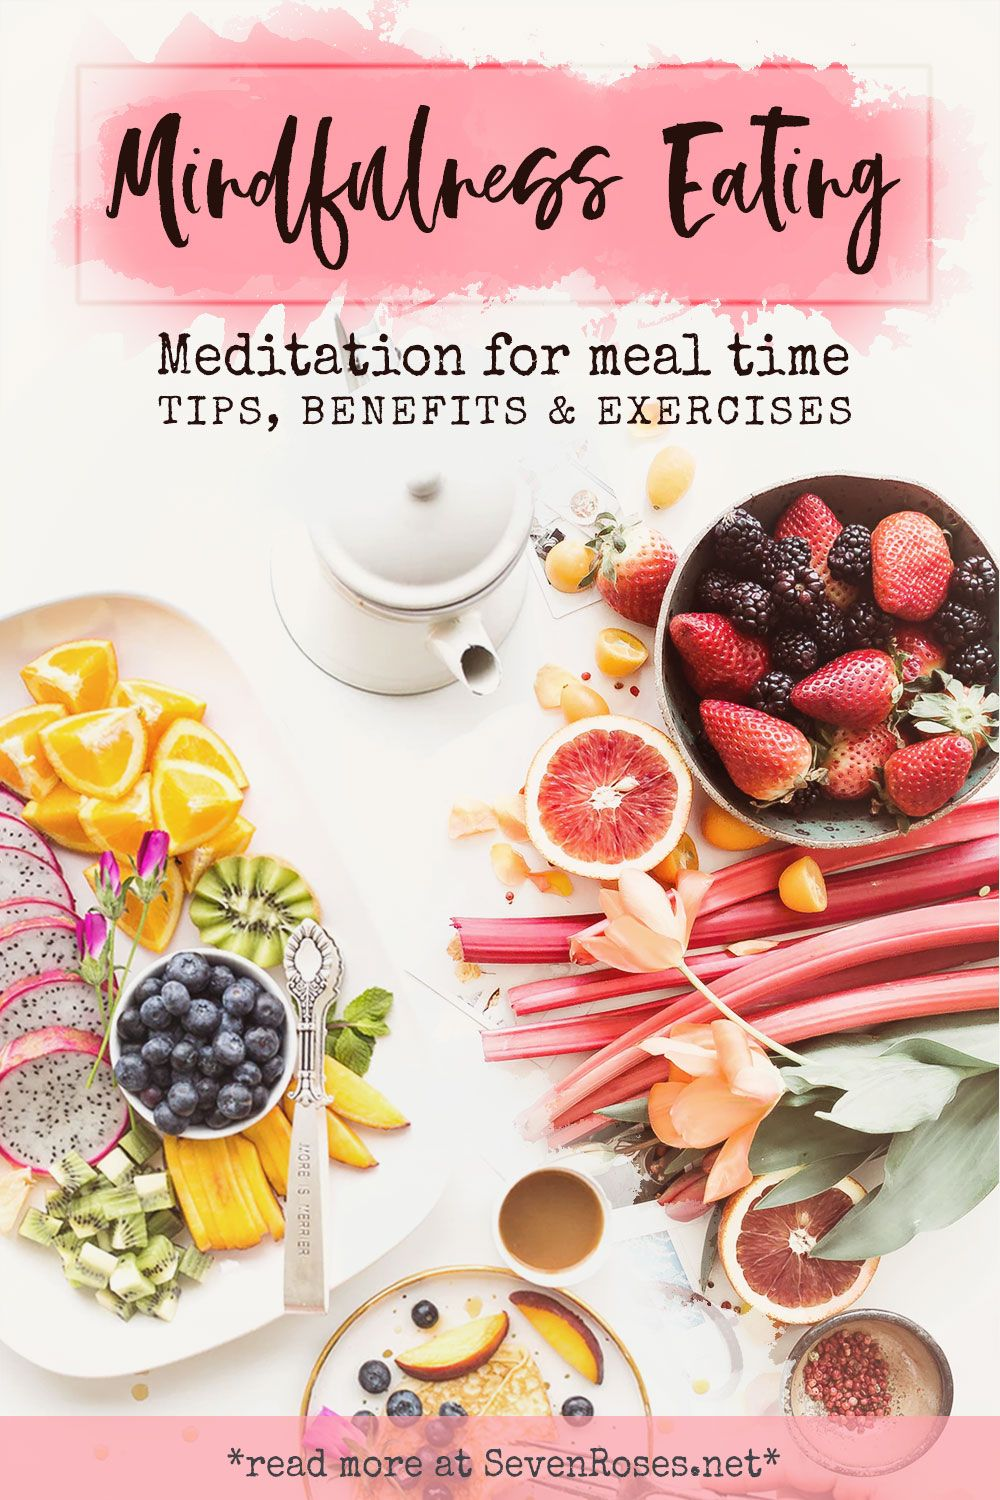 Mindfulness Eating: benefits, tips and exercises #healthyliving